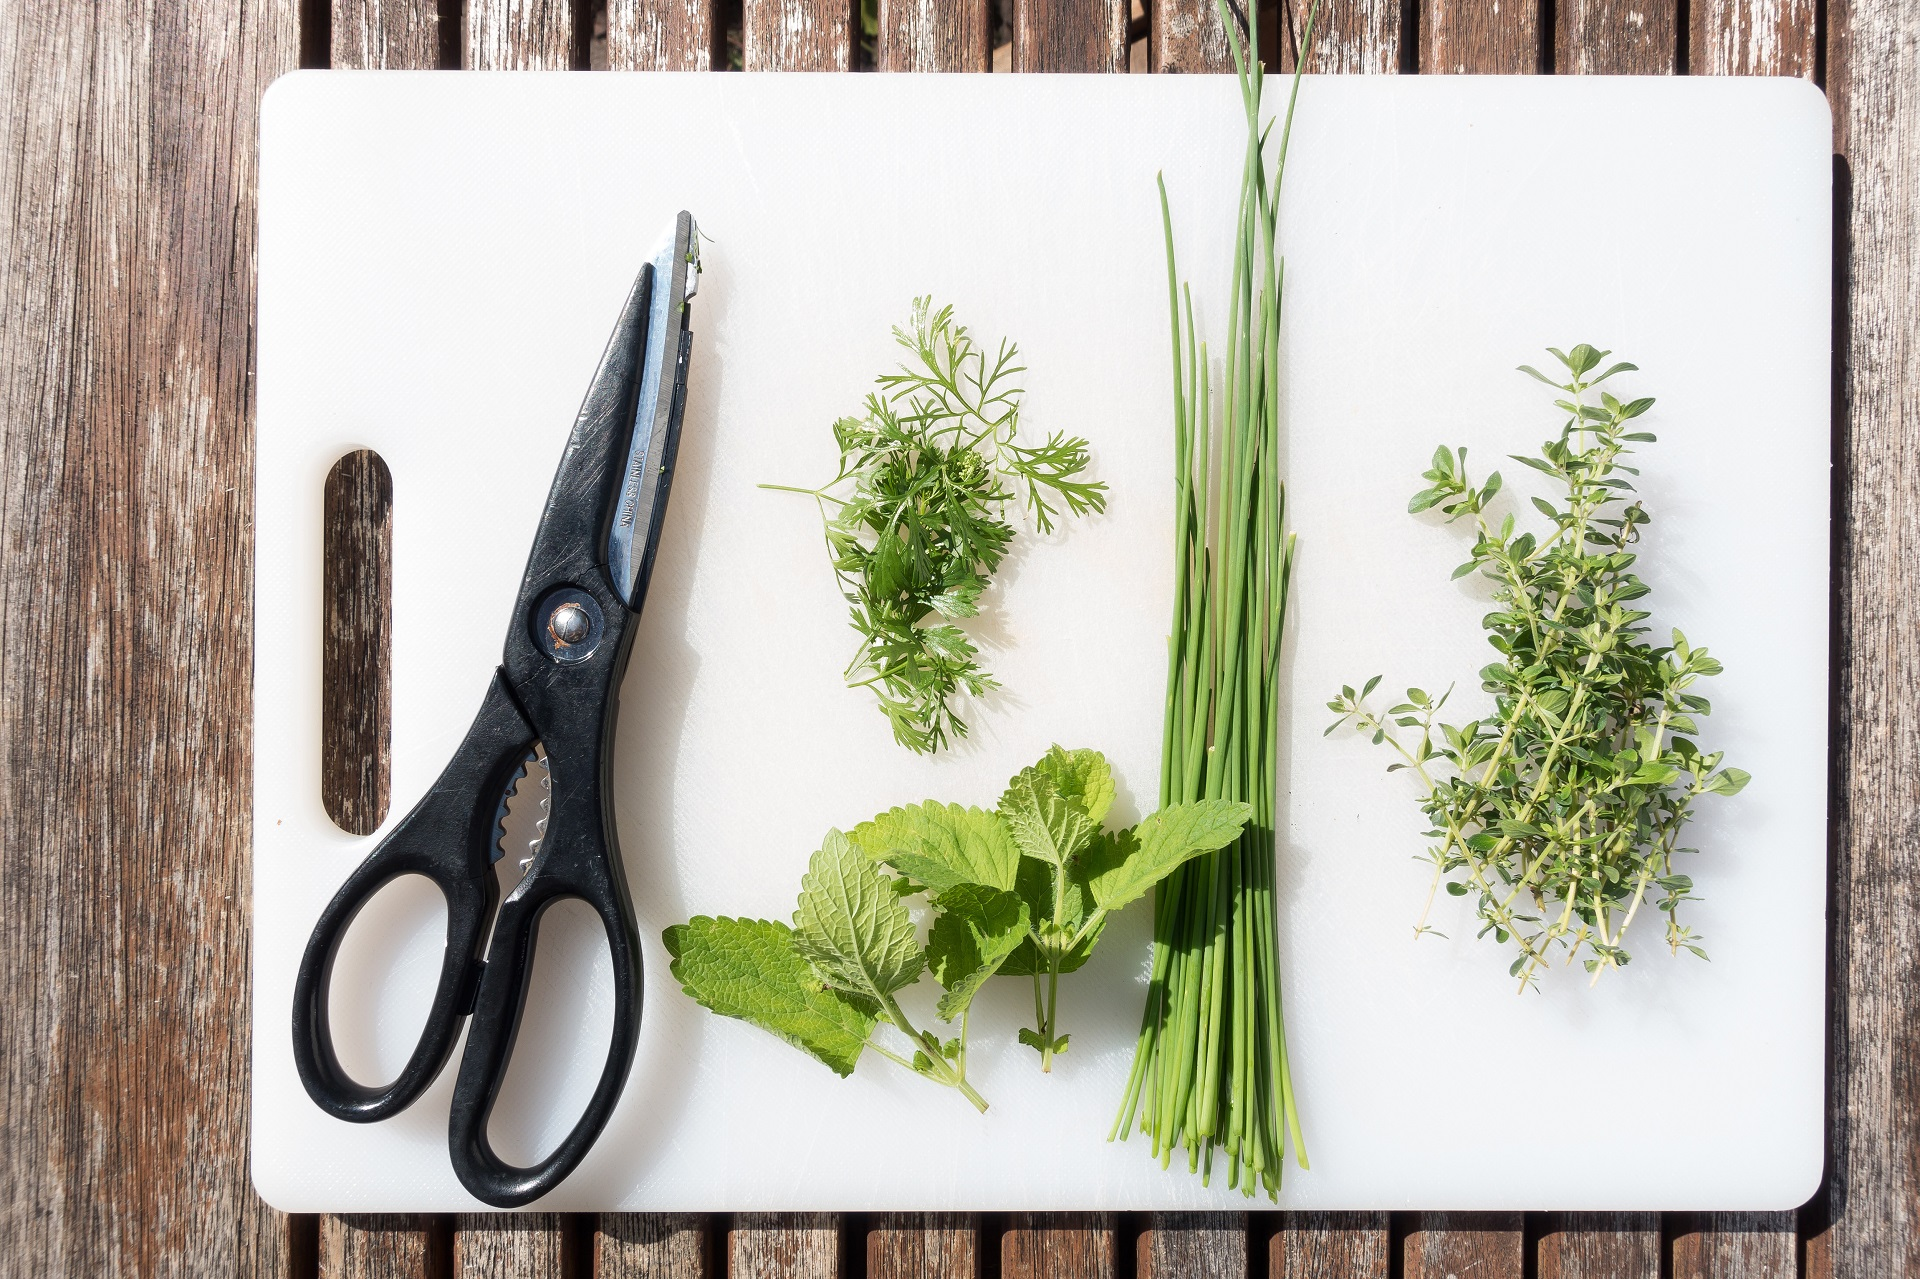 Herbs add flavor to salads.